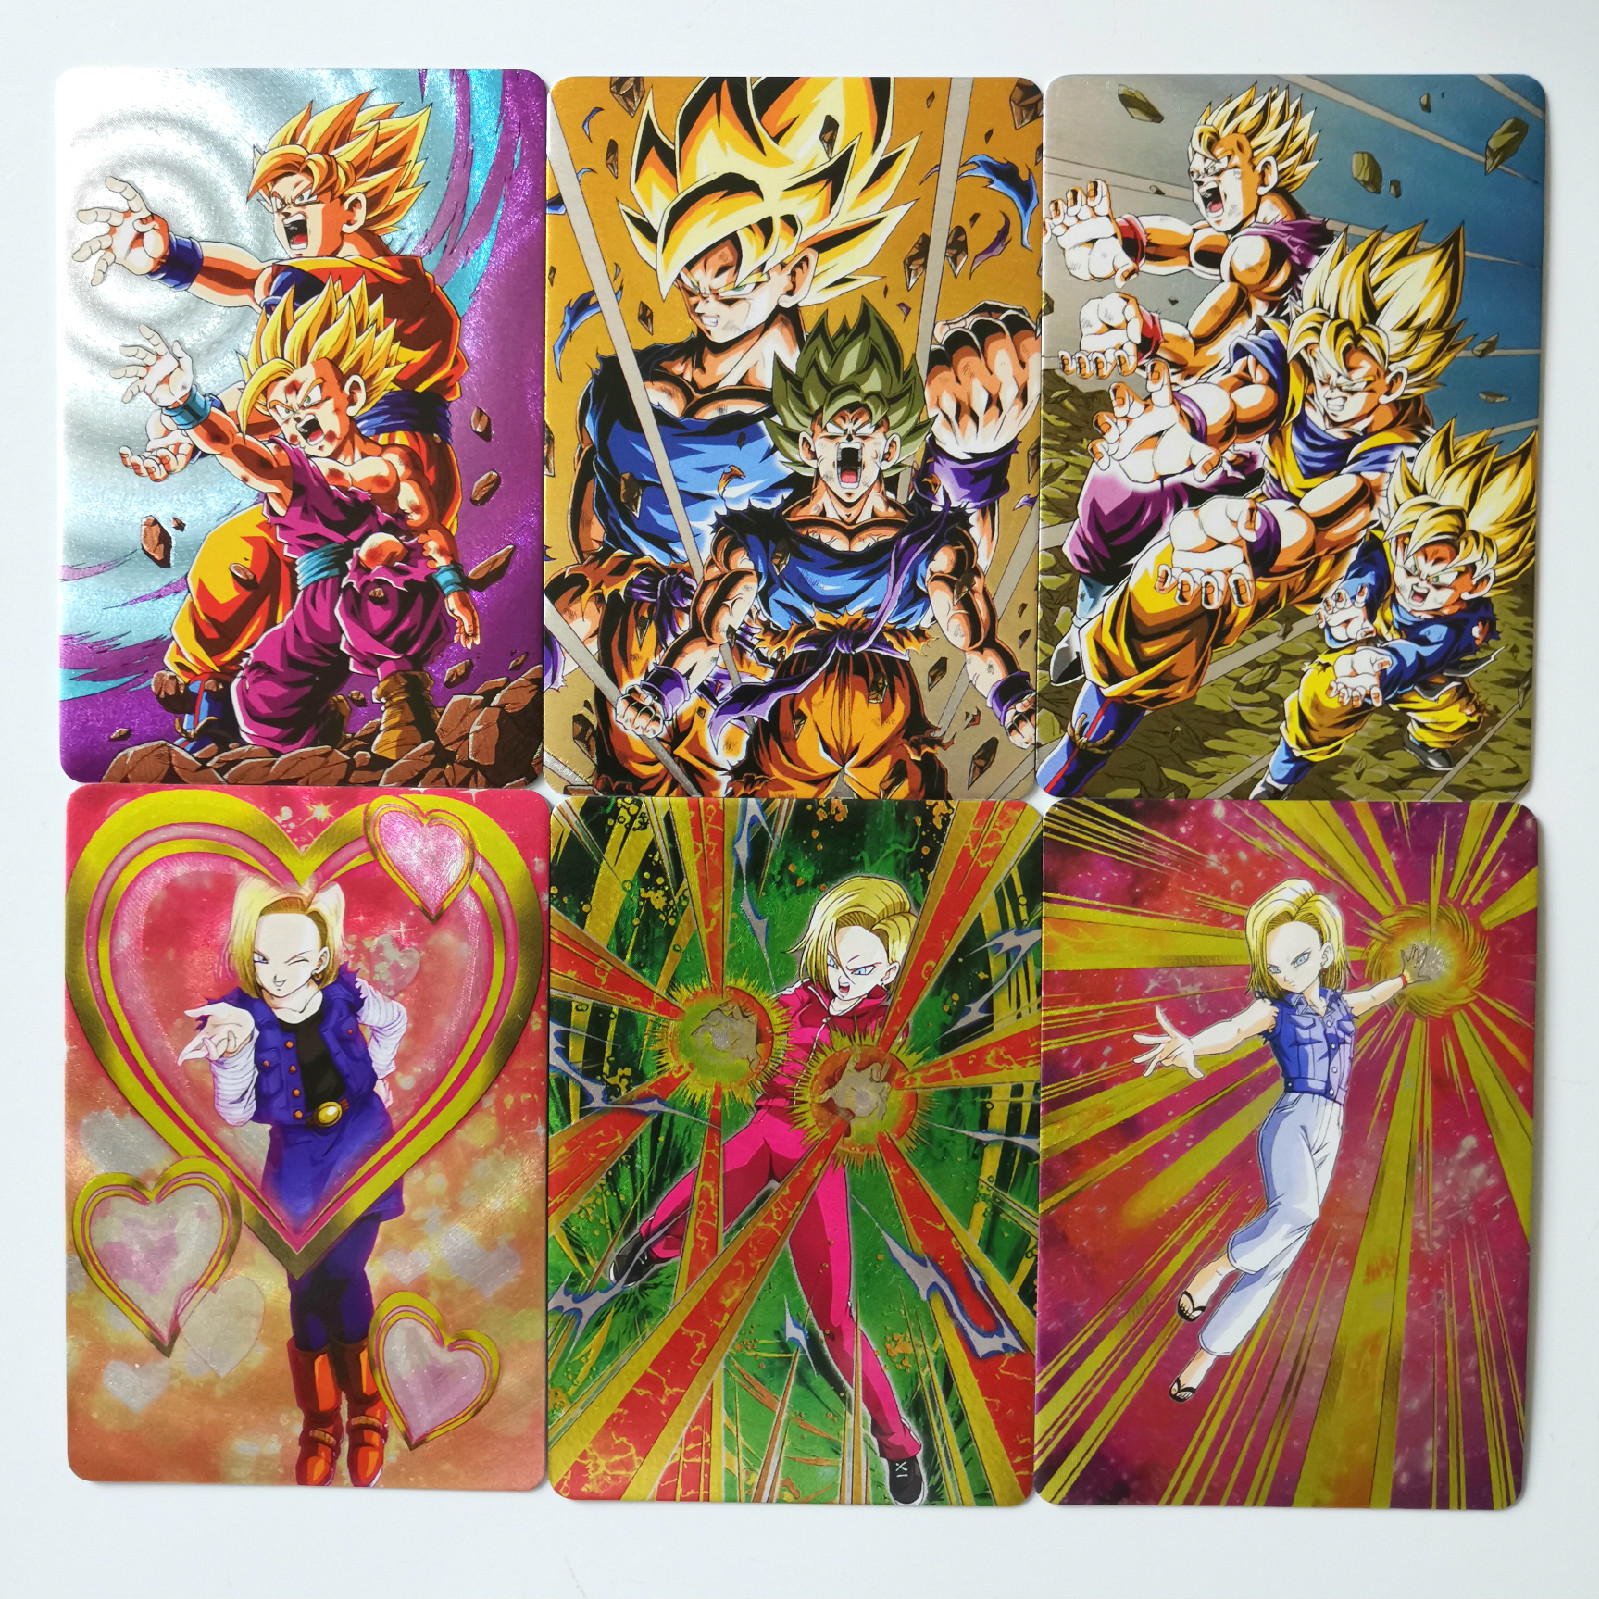 18pcs/set Super Dragon Ball Z Heroes Battle Card Ultra Instinct Goku Toys Hobbies Hobby Collectibles Game Collection Anime Cards